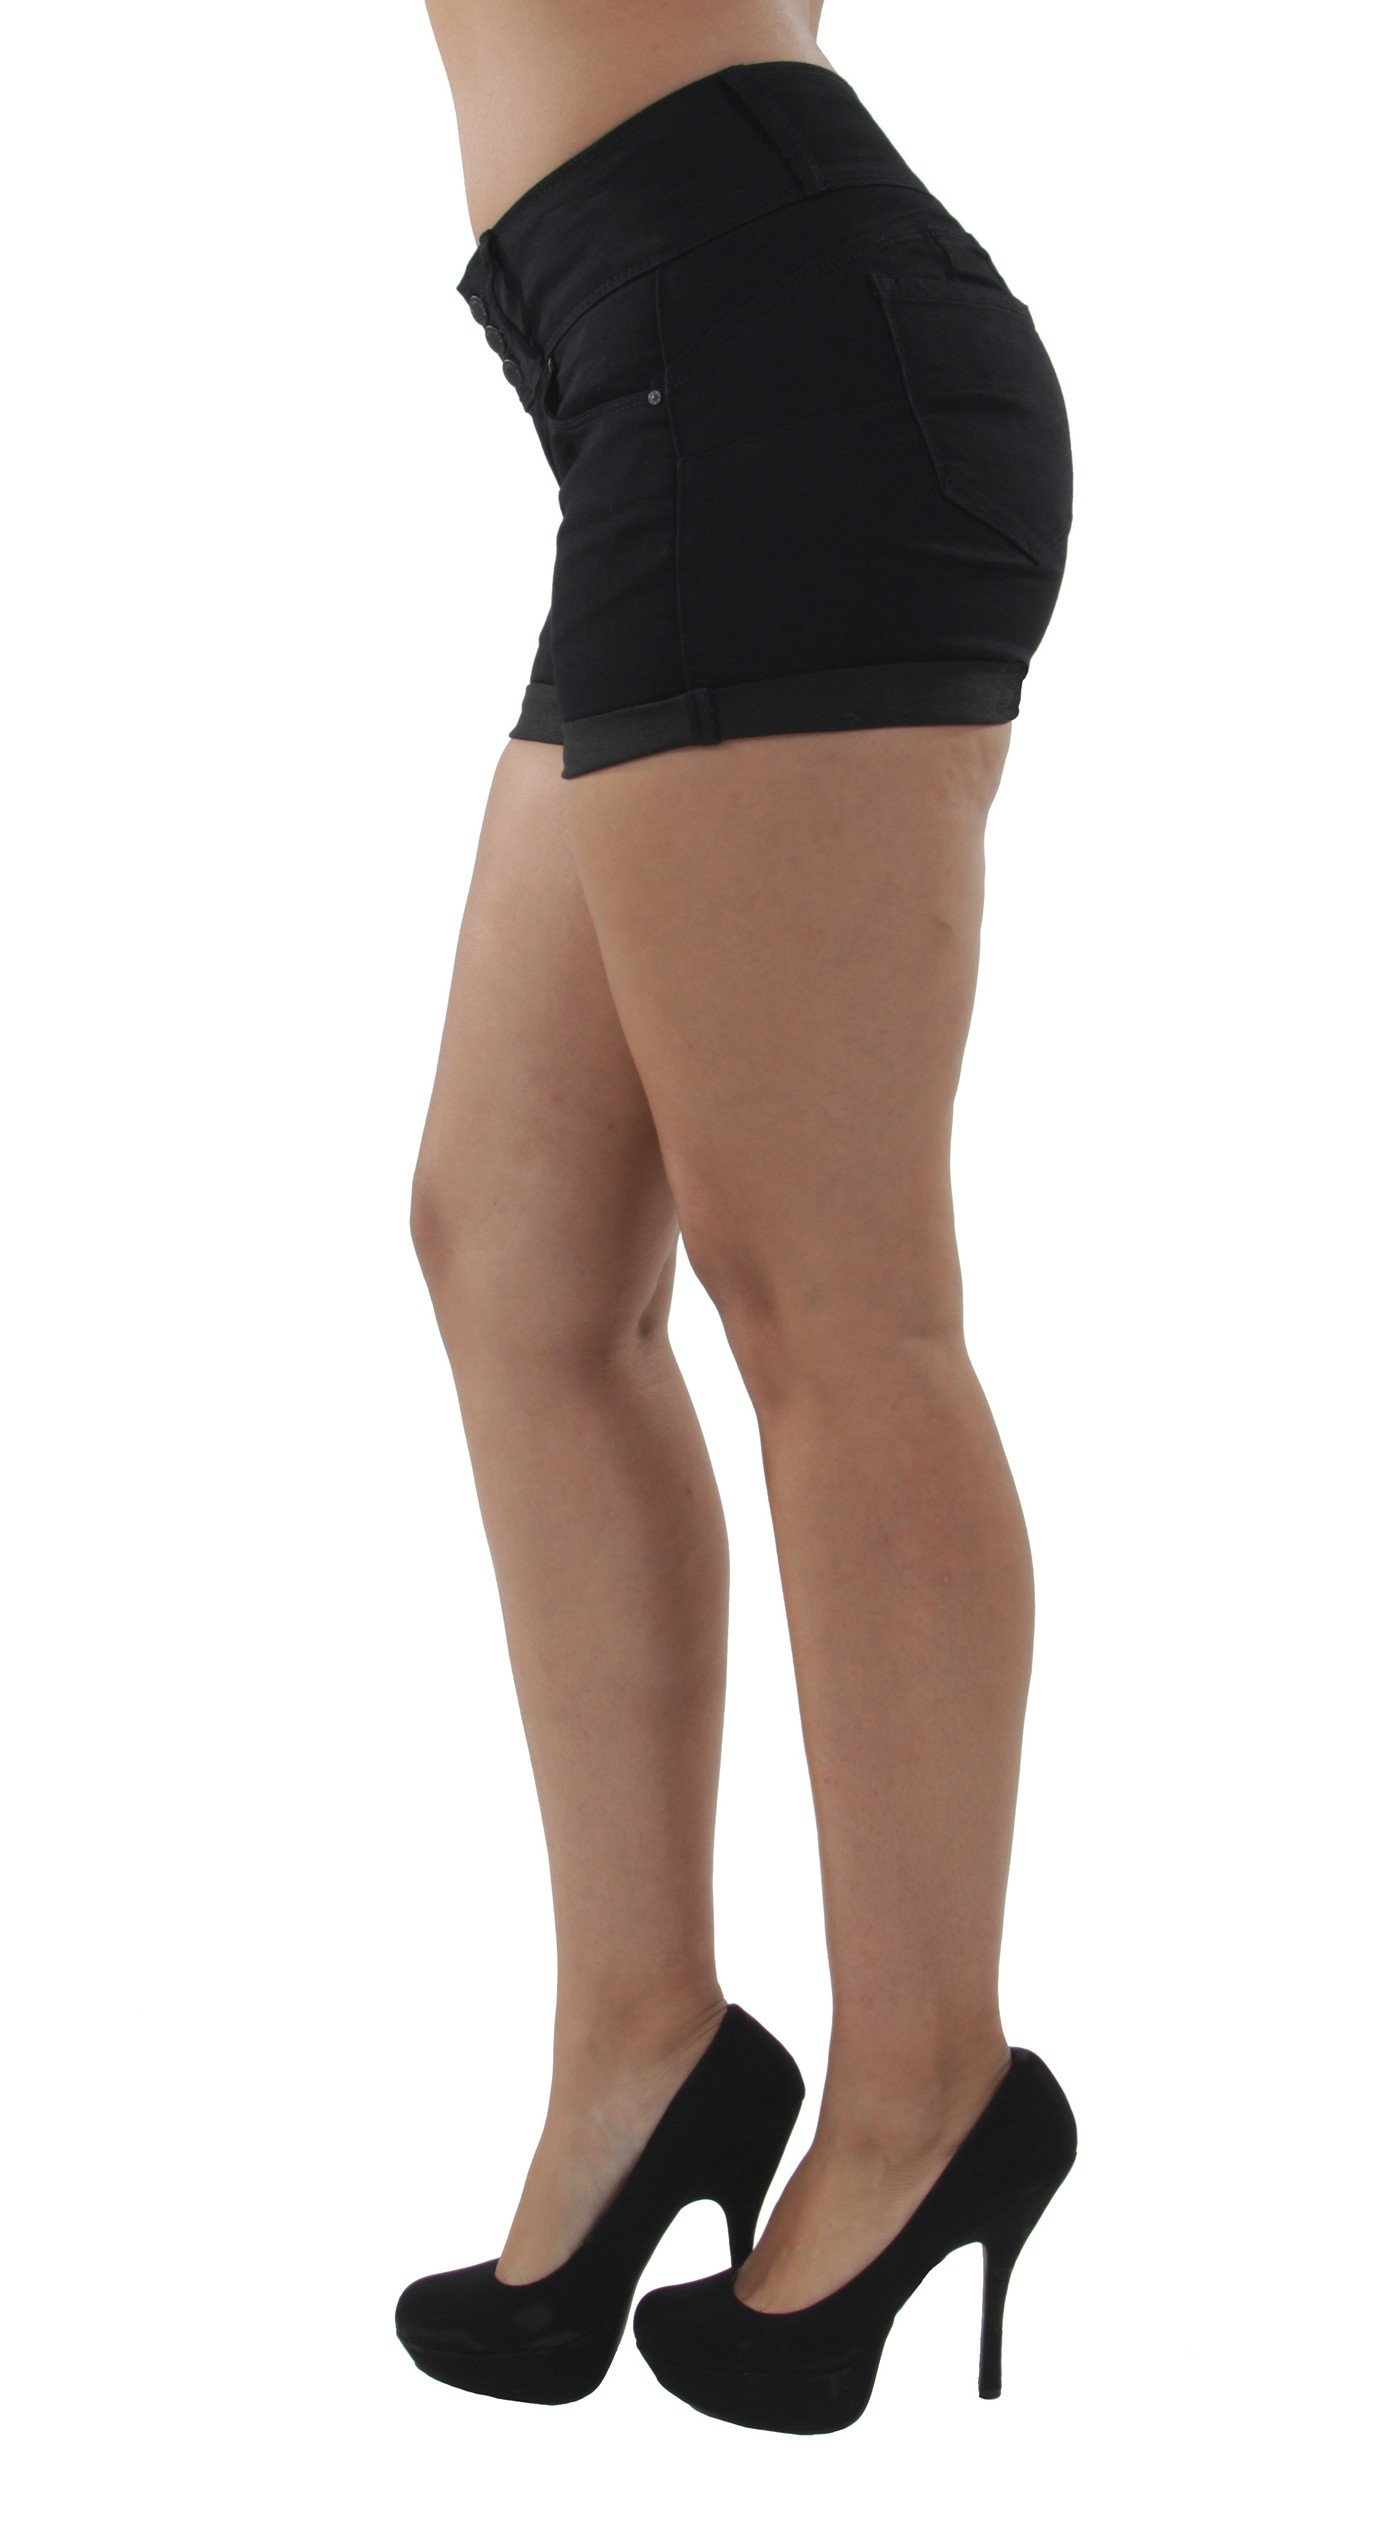 Fashion2Love 90099XL(SH) - Plus Size, Colombian Design, Mid Waist, Butt Lift, Booty Shorts in Black Size 1XL by Fashion2Love (Image #3)